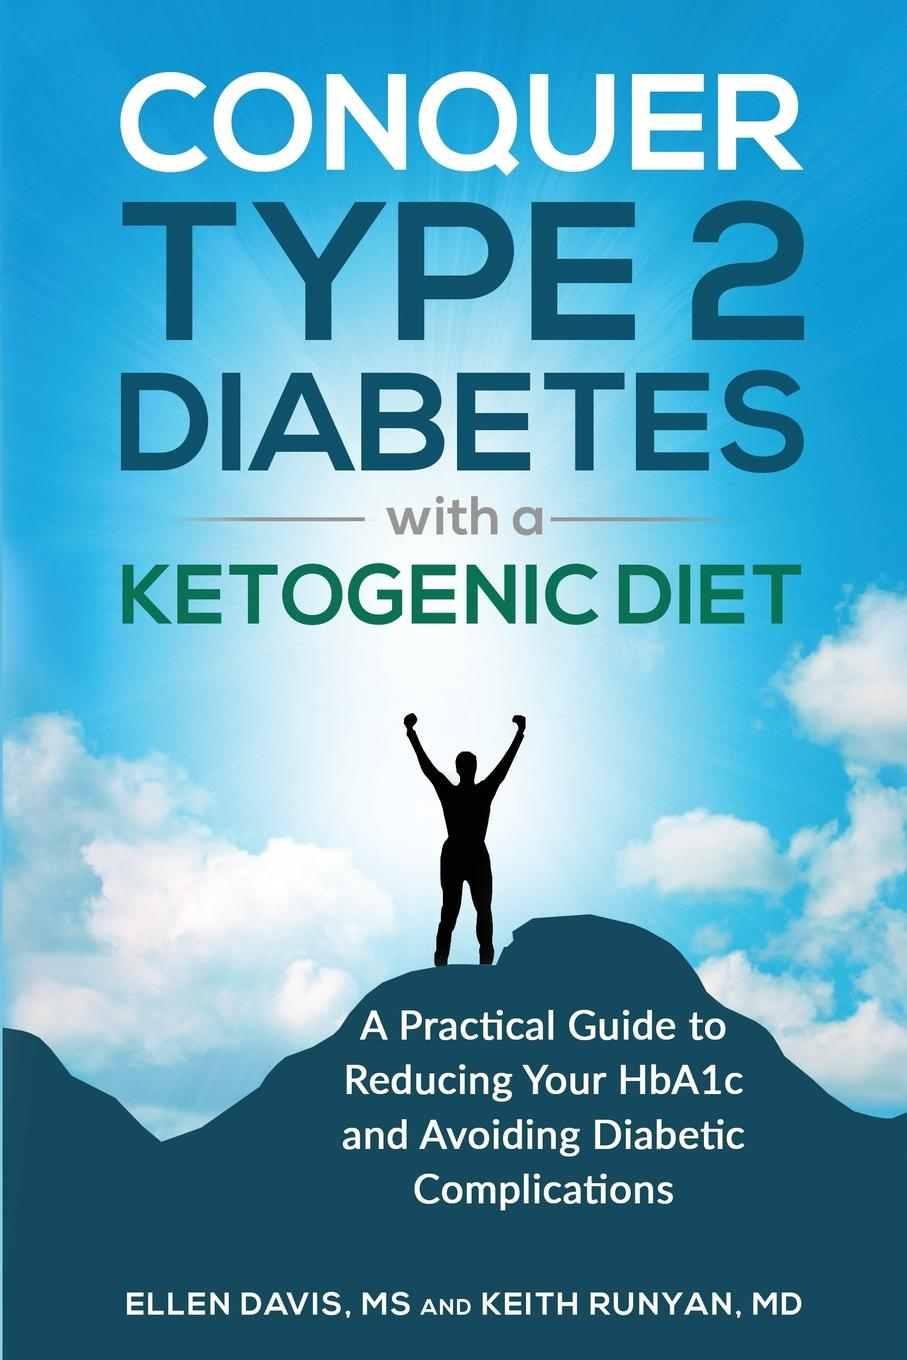 Ellen Davis, Keith Runyan Conquer Type 2 Diabetes with a Ketogenic Diet. A Practical Guide for Reducing Your HBA1c and Avoiding Diabetic Complications agent wanted wrist watch semi conductor laser physical therapy appliance to treat diabetes hypertension hyperlipaemia